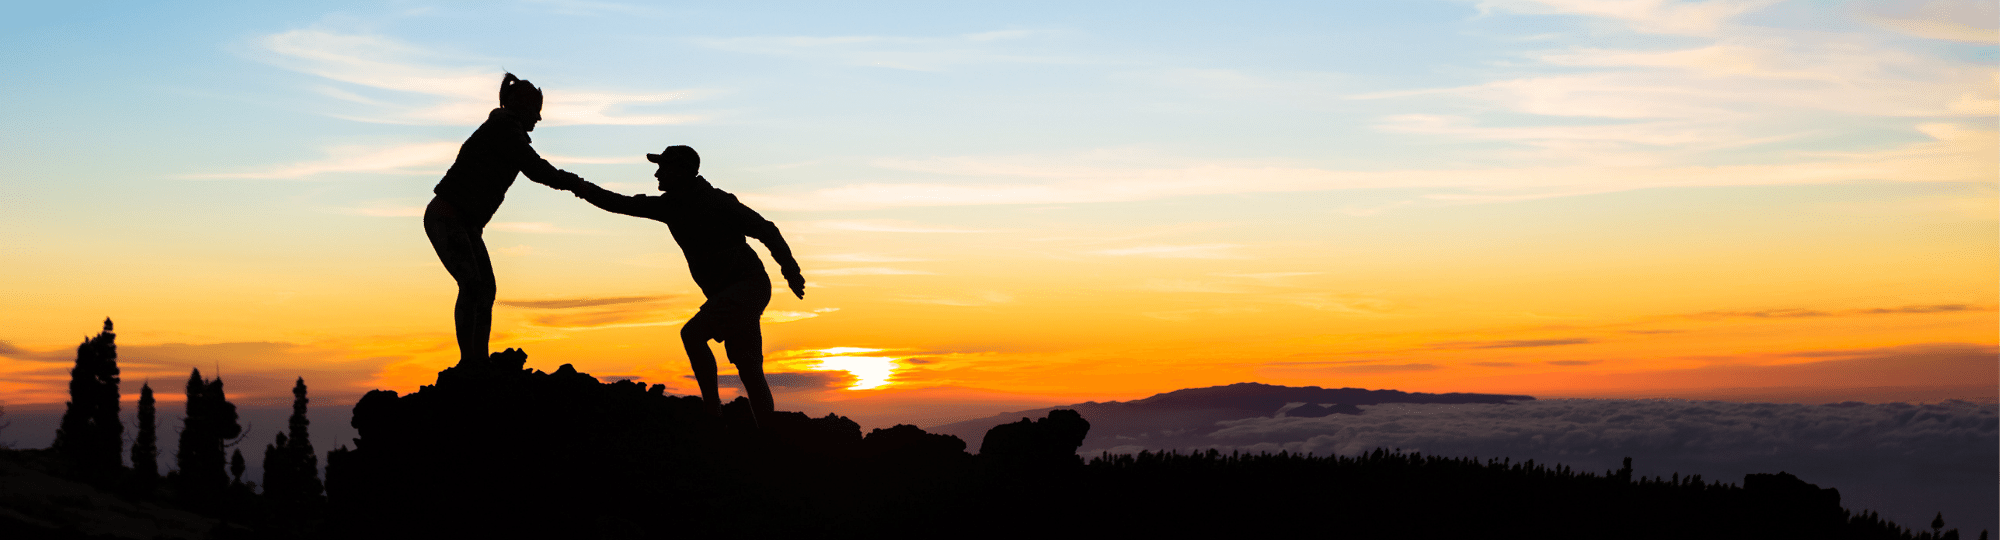 Silhouette of one person helping another to the top of a hill, with sunset behind them